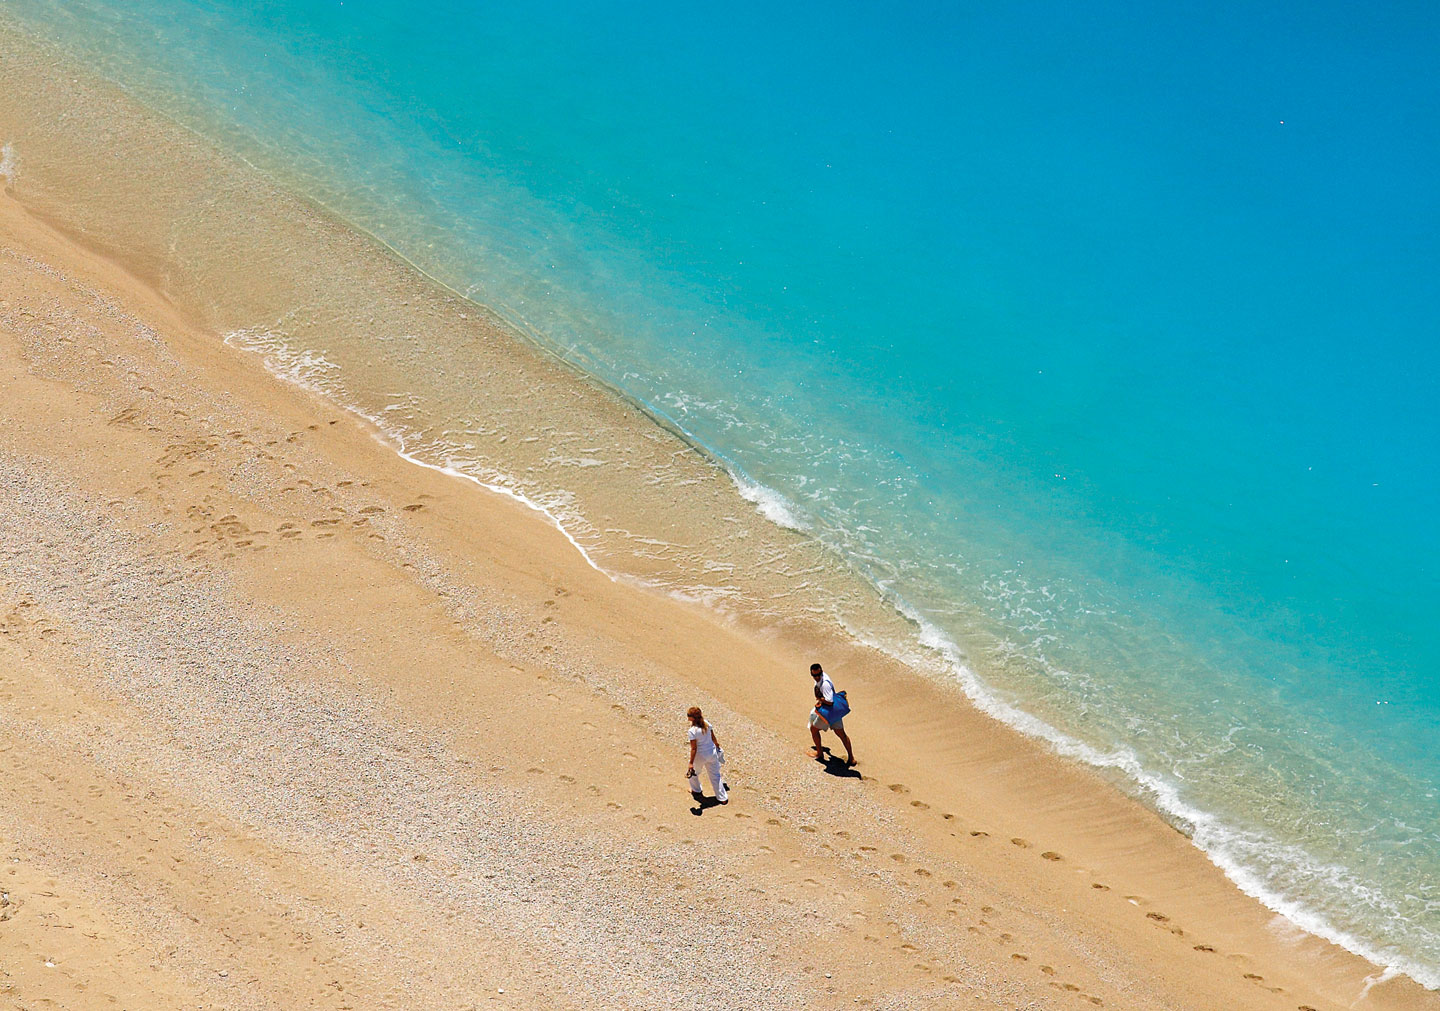 Egkremnoi in Lefkada | World-renowned beach with turquoise waters